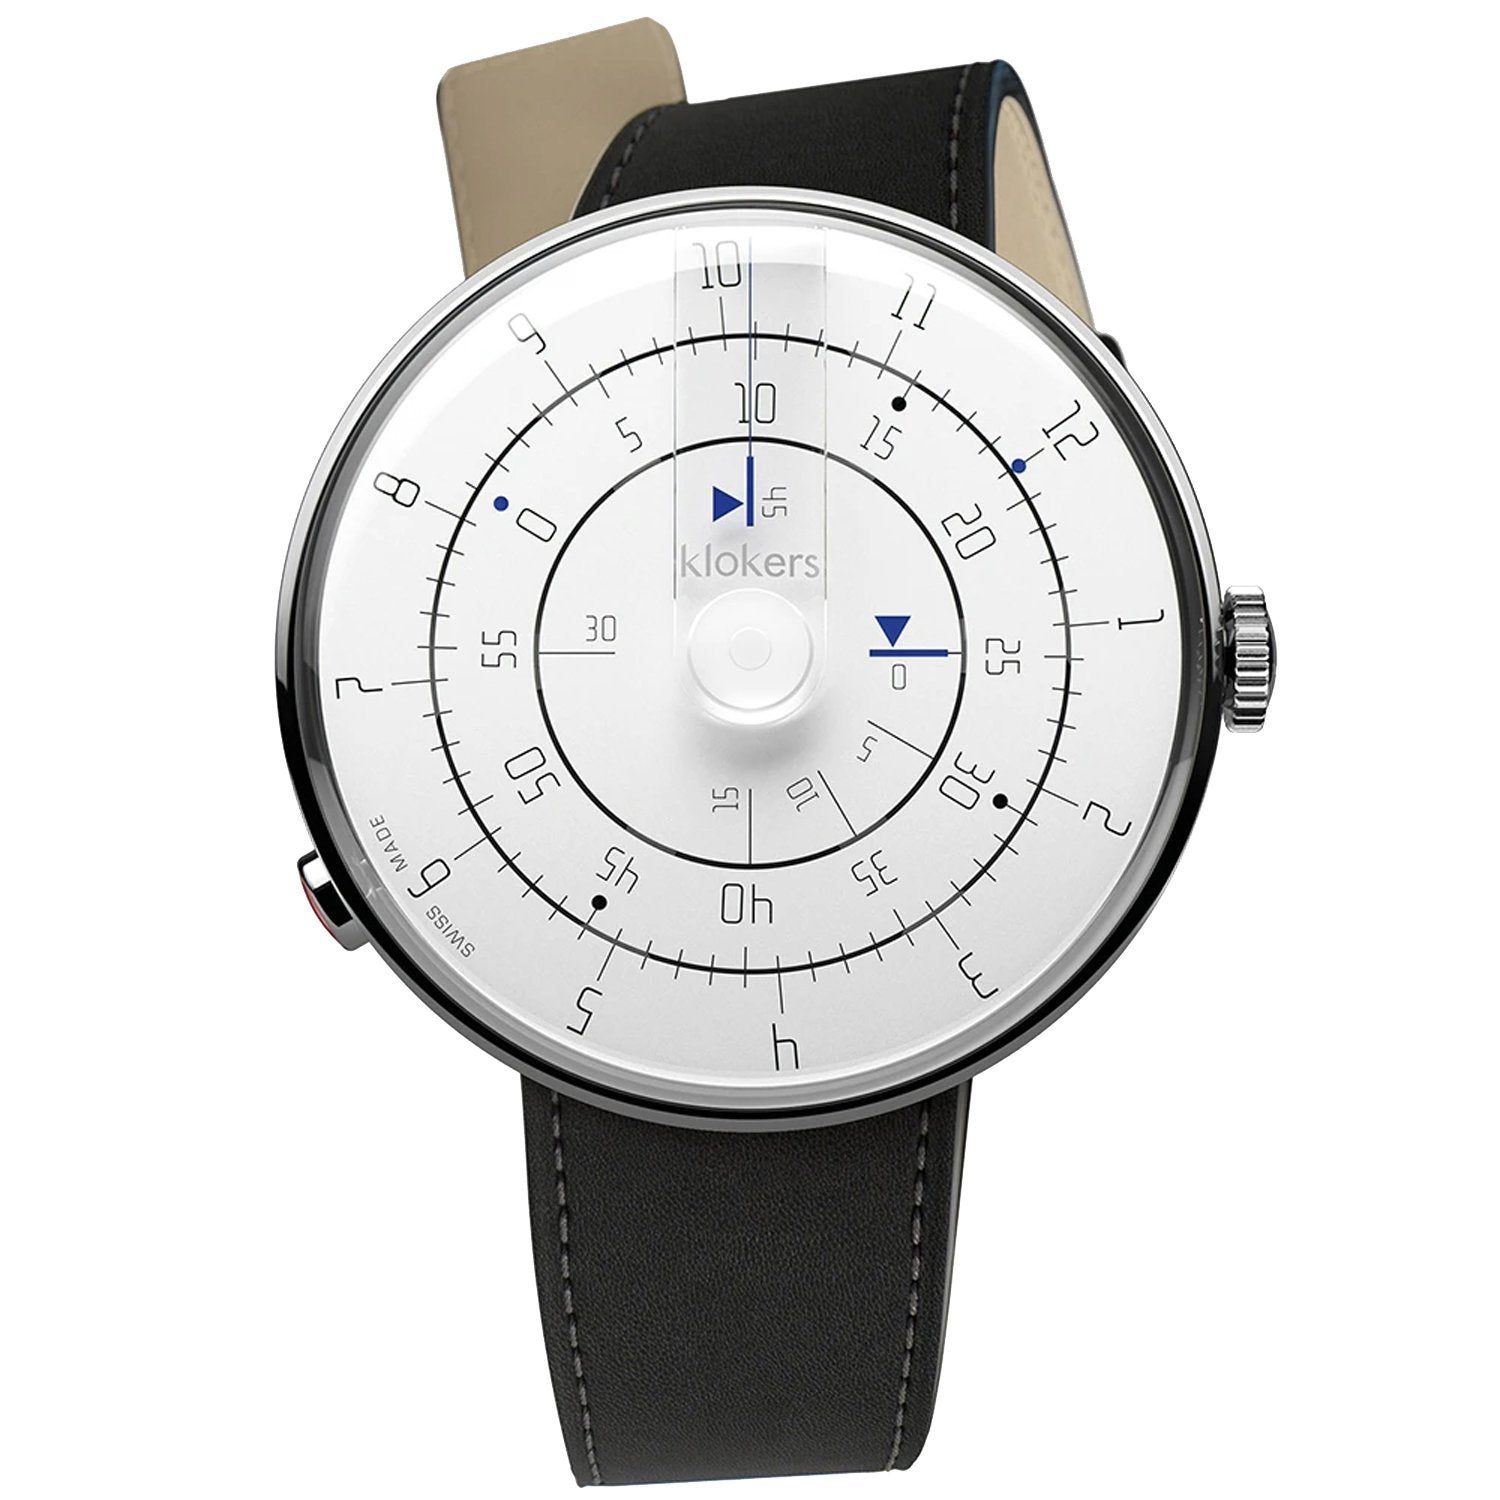 Klokers Minimal Black Leather - Watches & Crystals